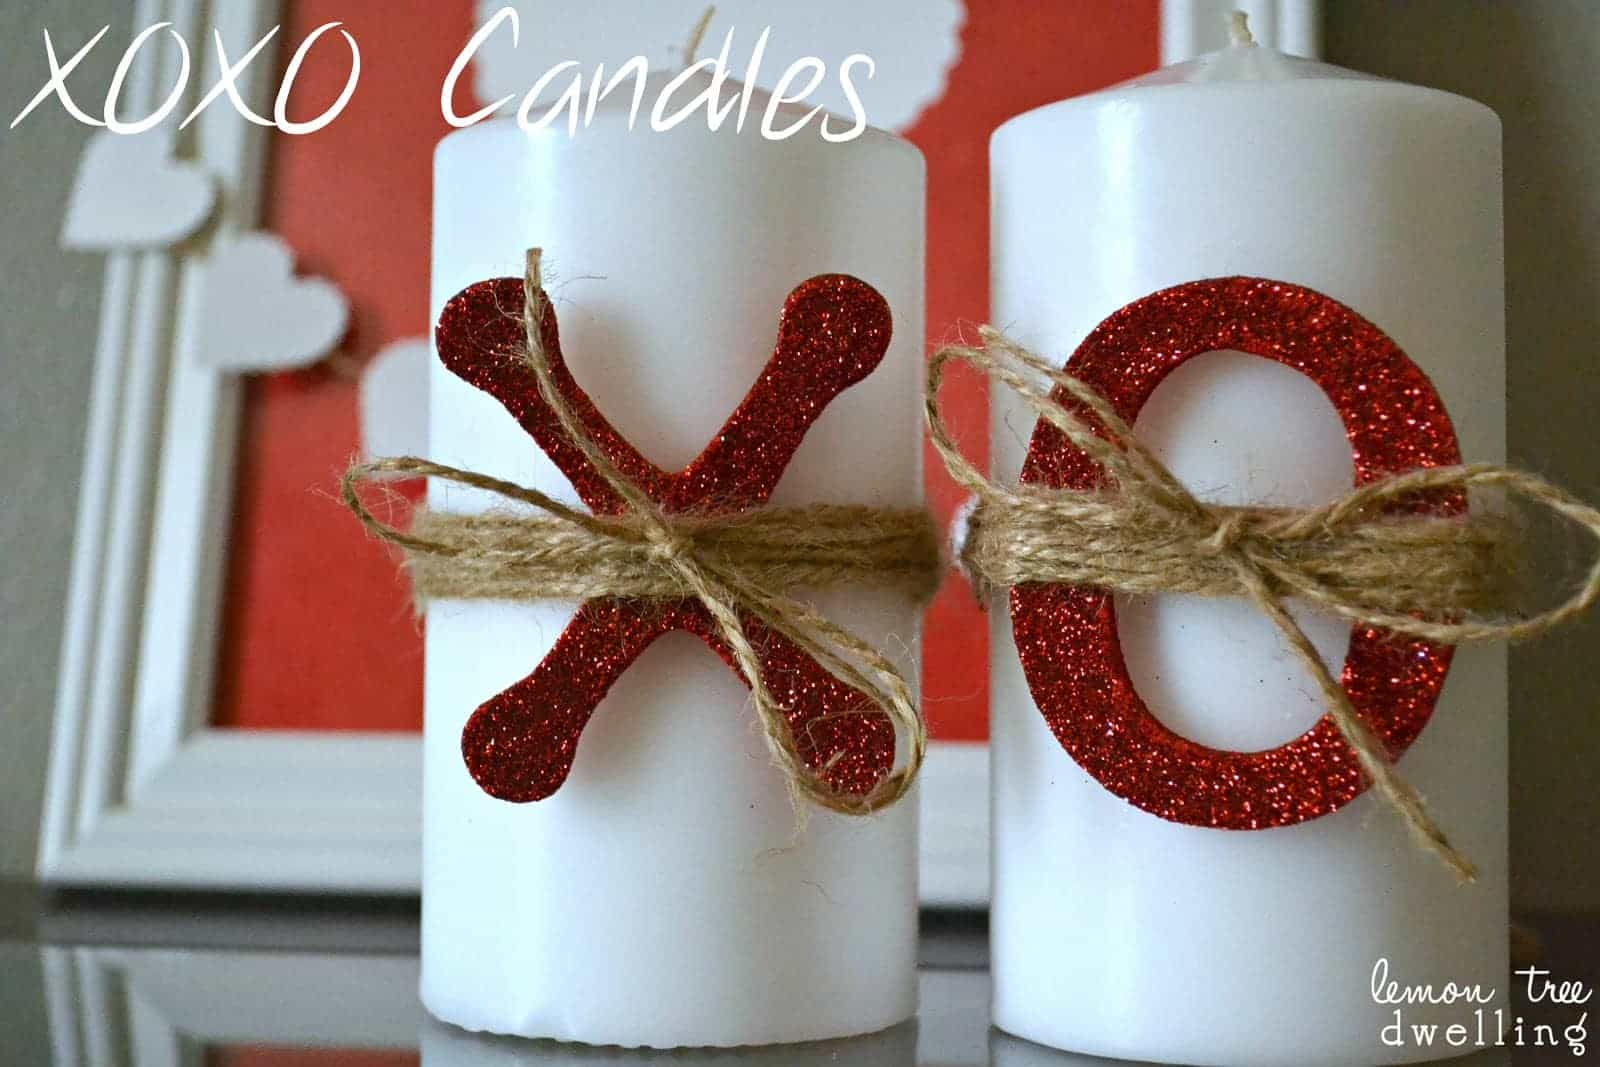 xoxo candles oerfect for valentines day